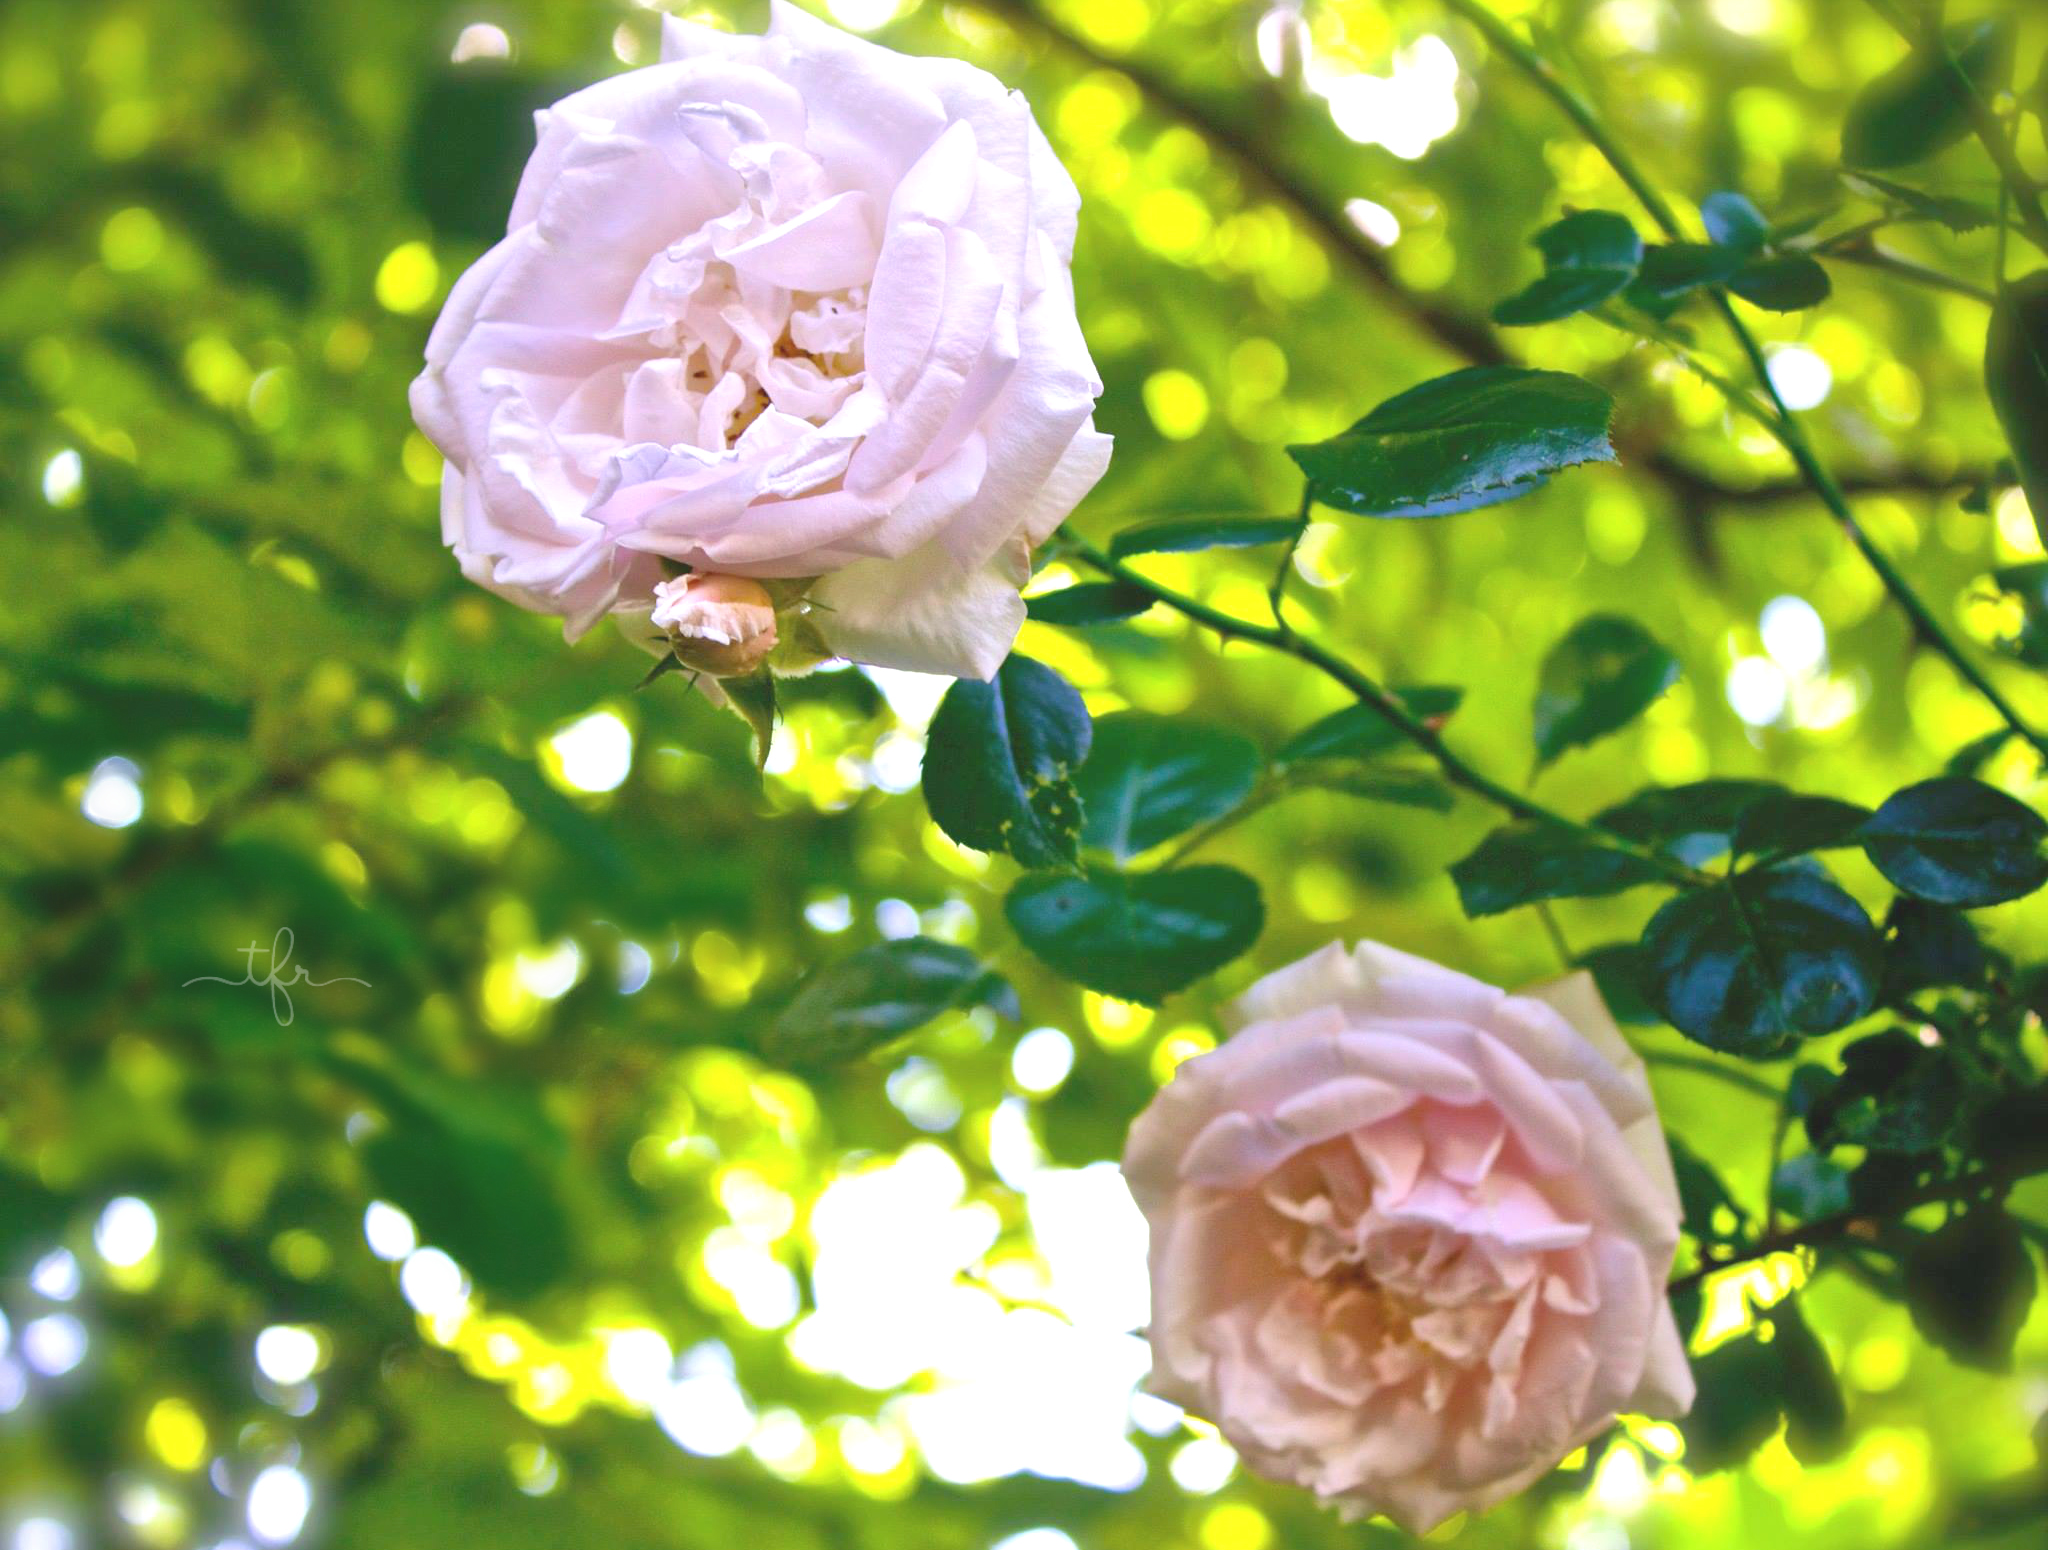 Climbing Roses Really Know How To Put On A Show. I Canu0027t Help